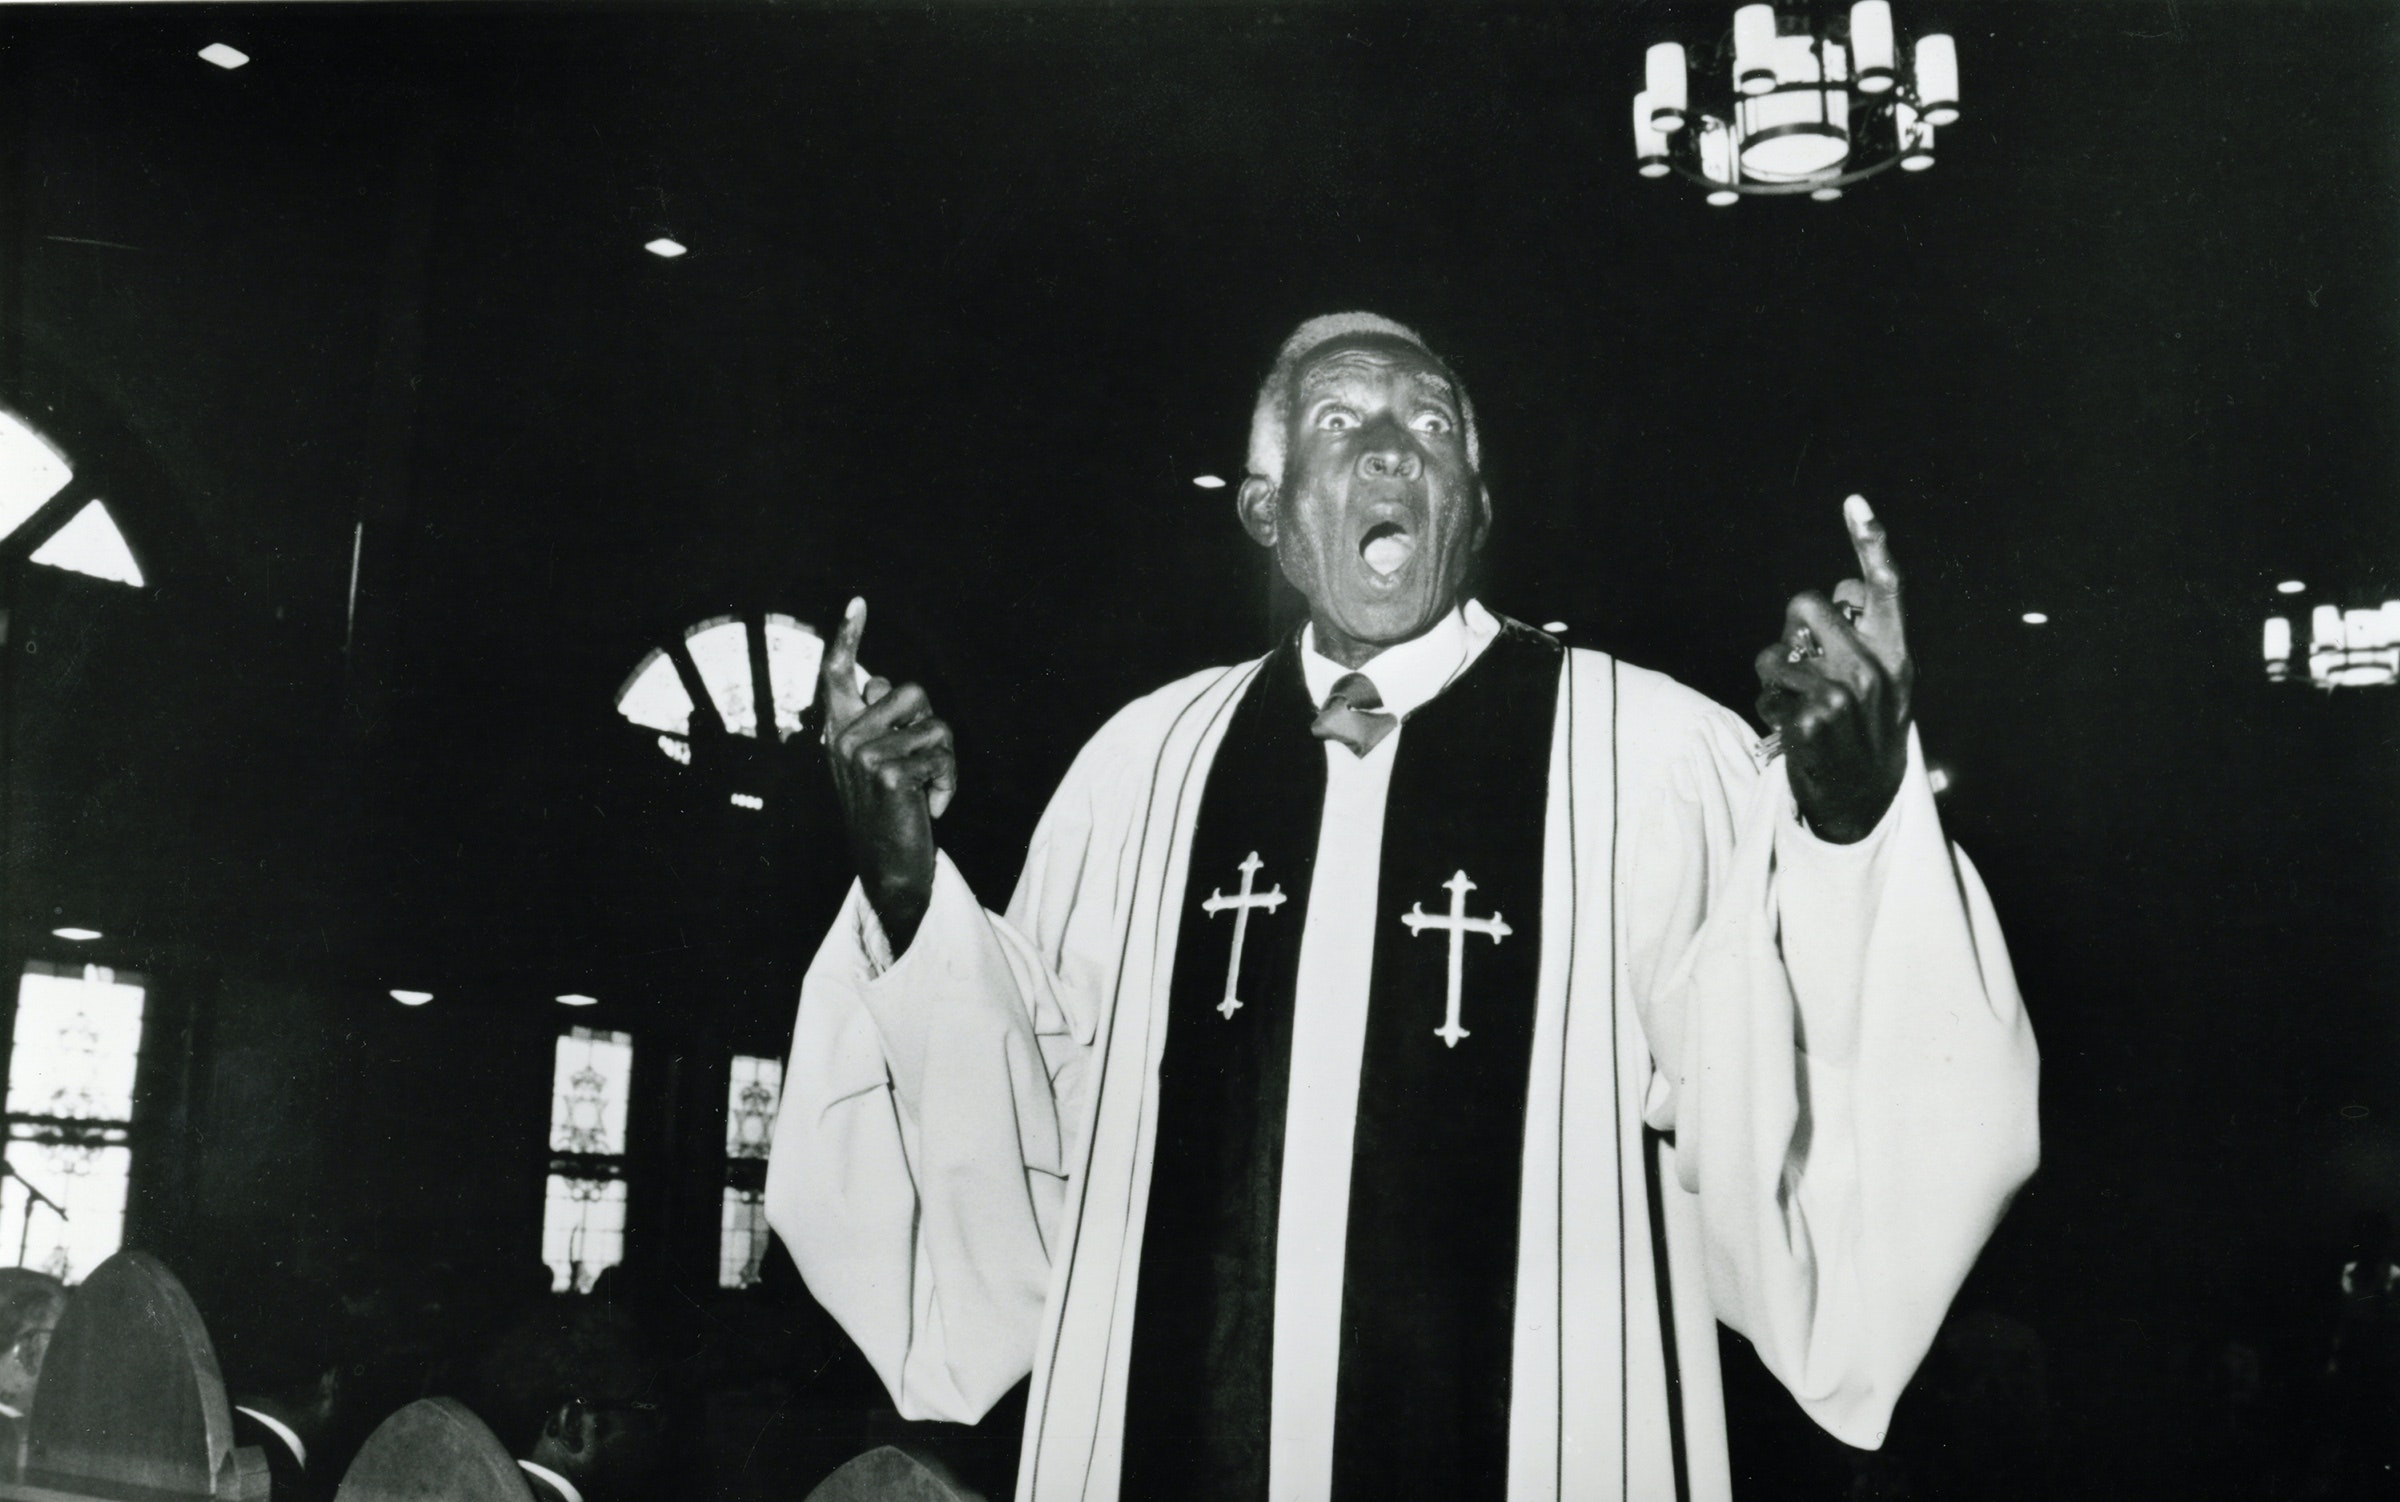 Black and white image of a pastor singing with his fingers pointed upward.